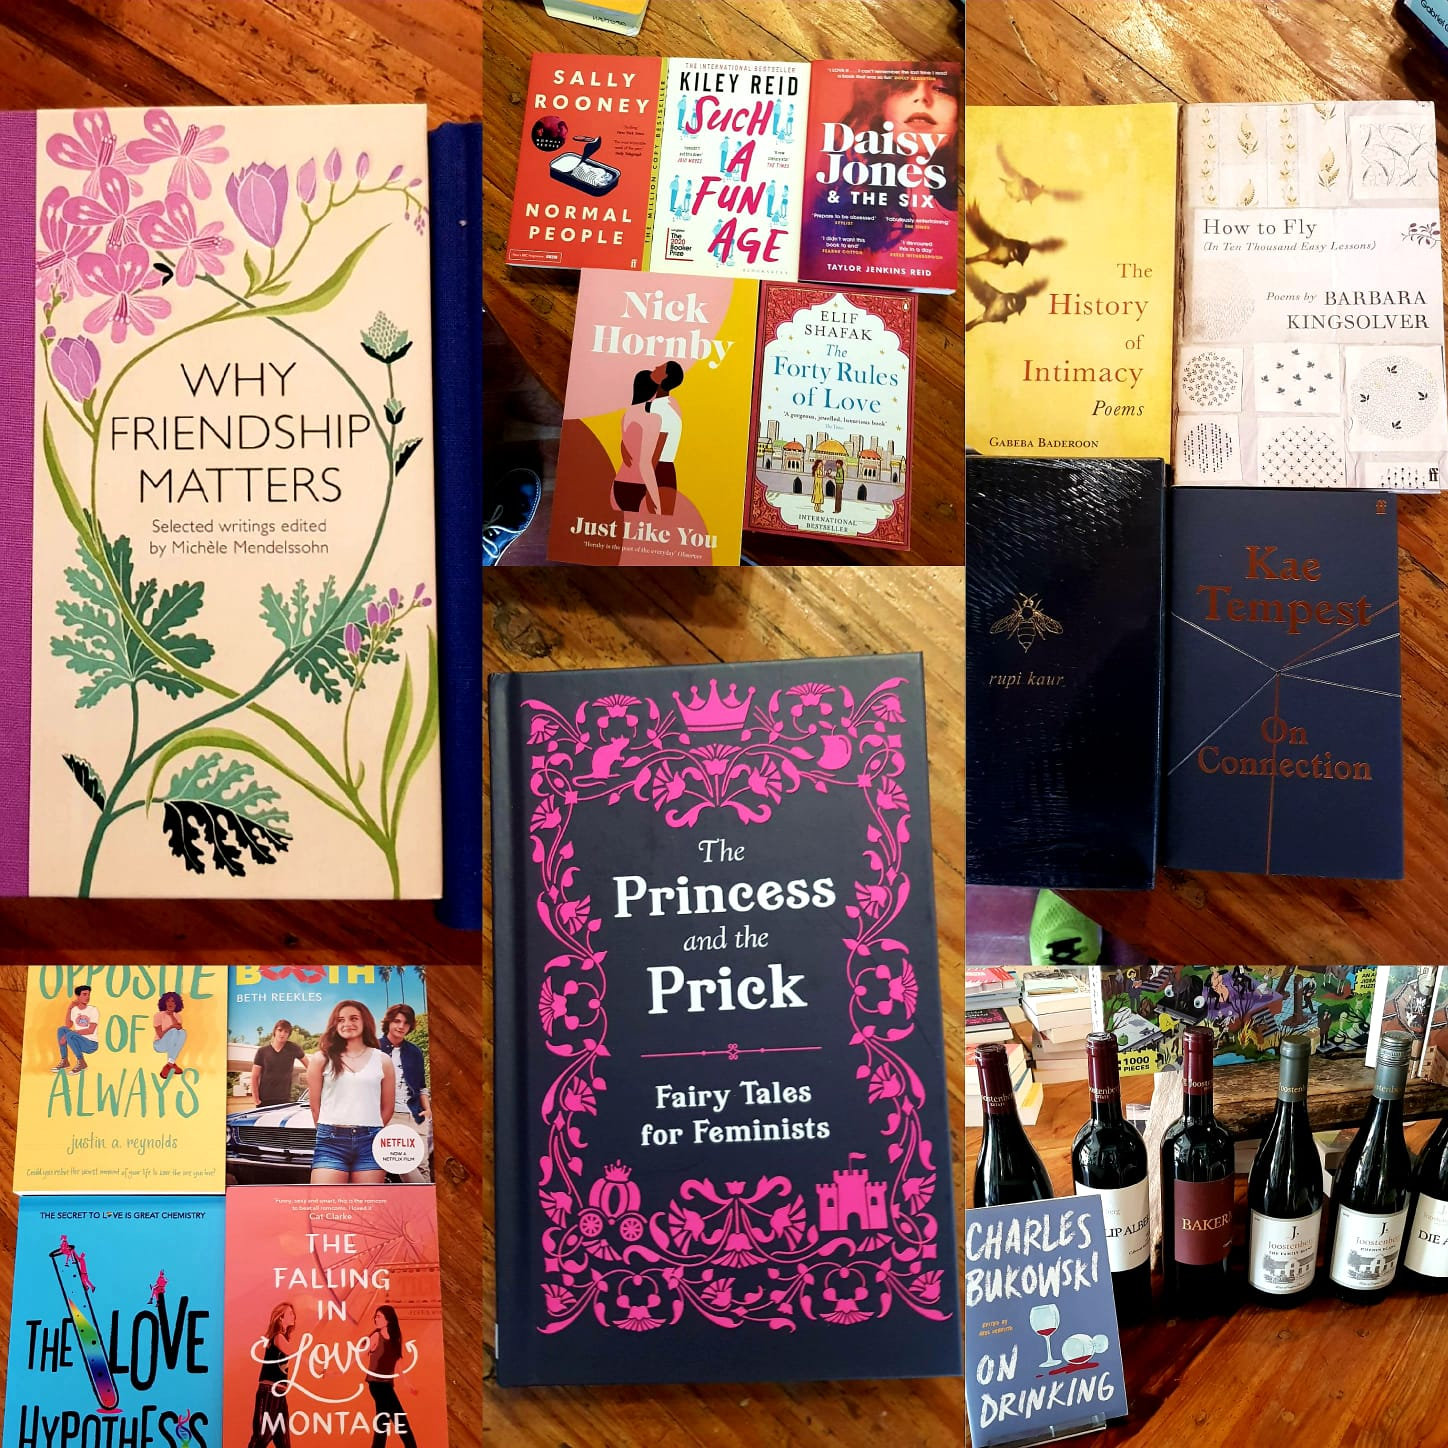 Ideas for Valentines or Galentines Day from Love Books